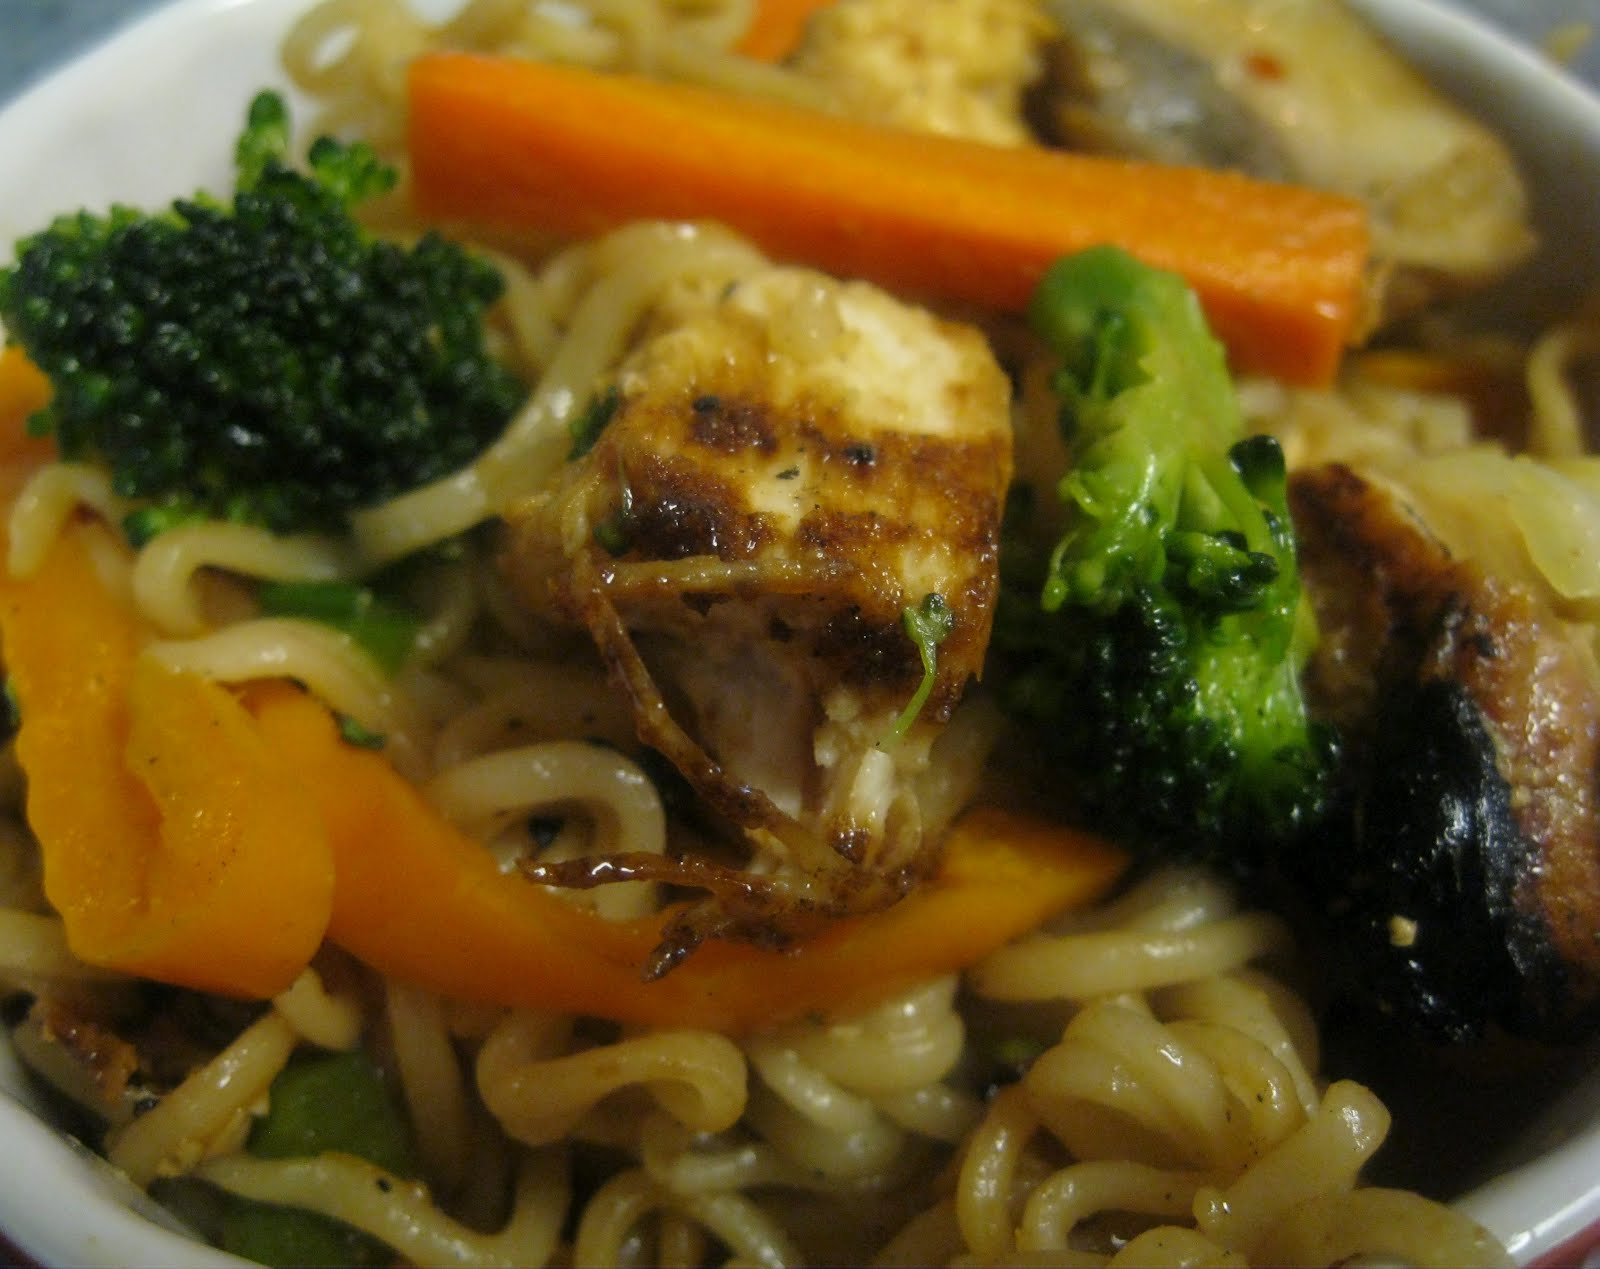 The Frugal Pantry: Quick Stir Fry